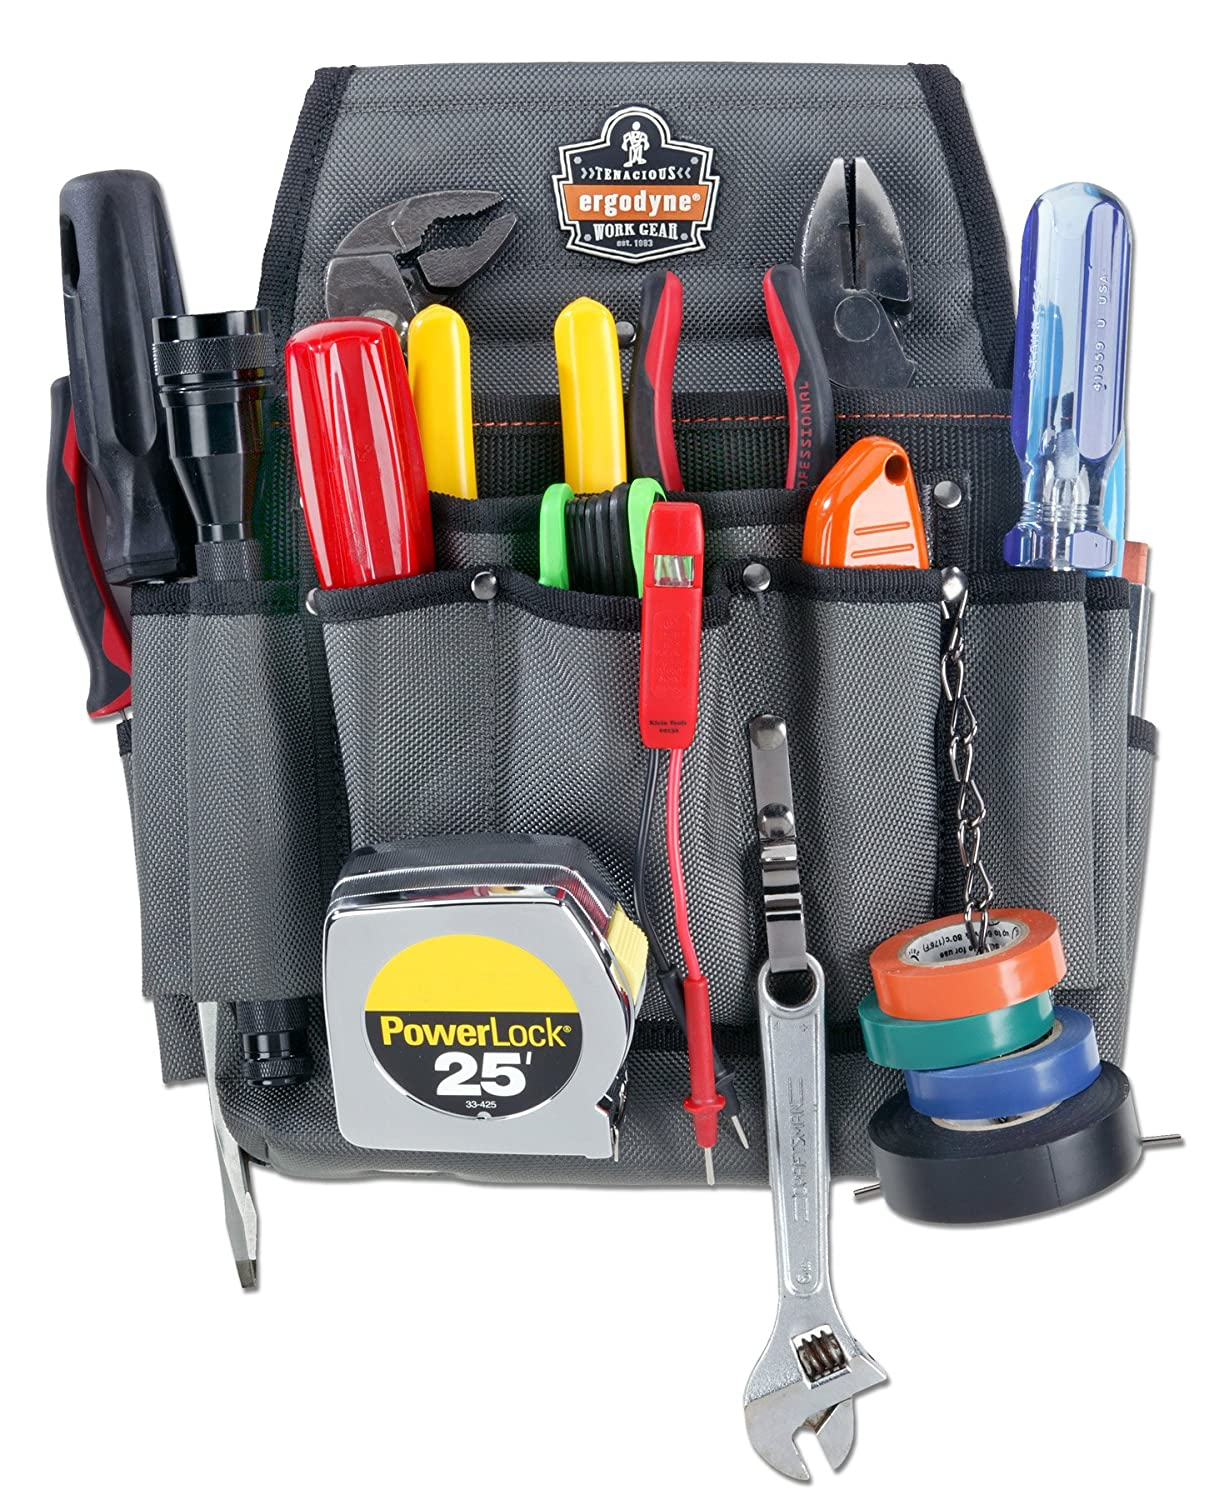 Electrician tools 21